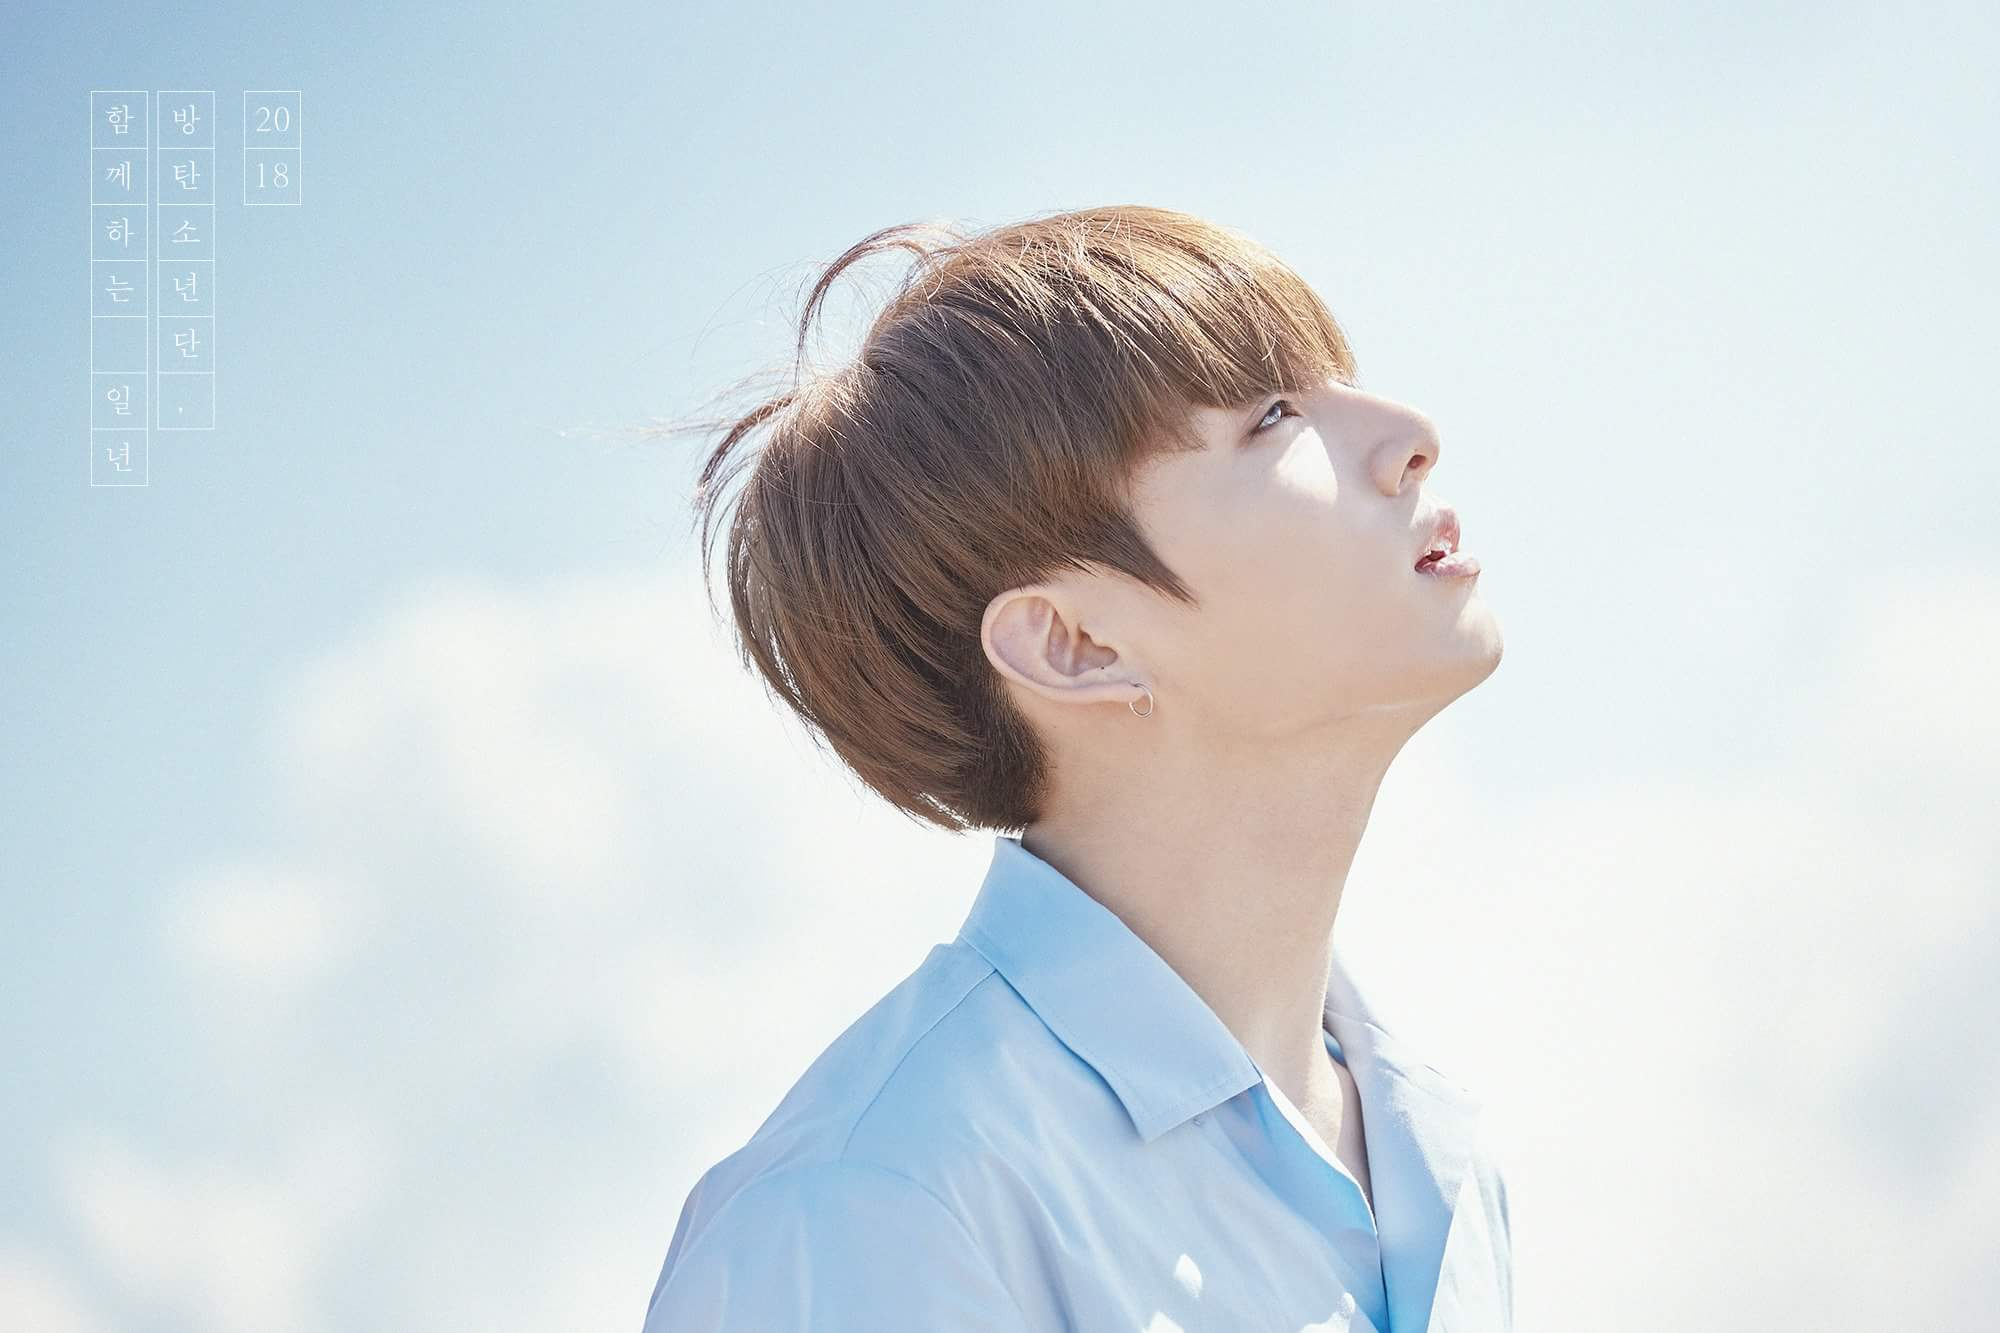 Jungkook Bts Images Jungkook Hd Fond Décran And Background Photos